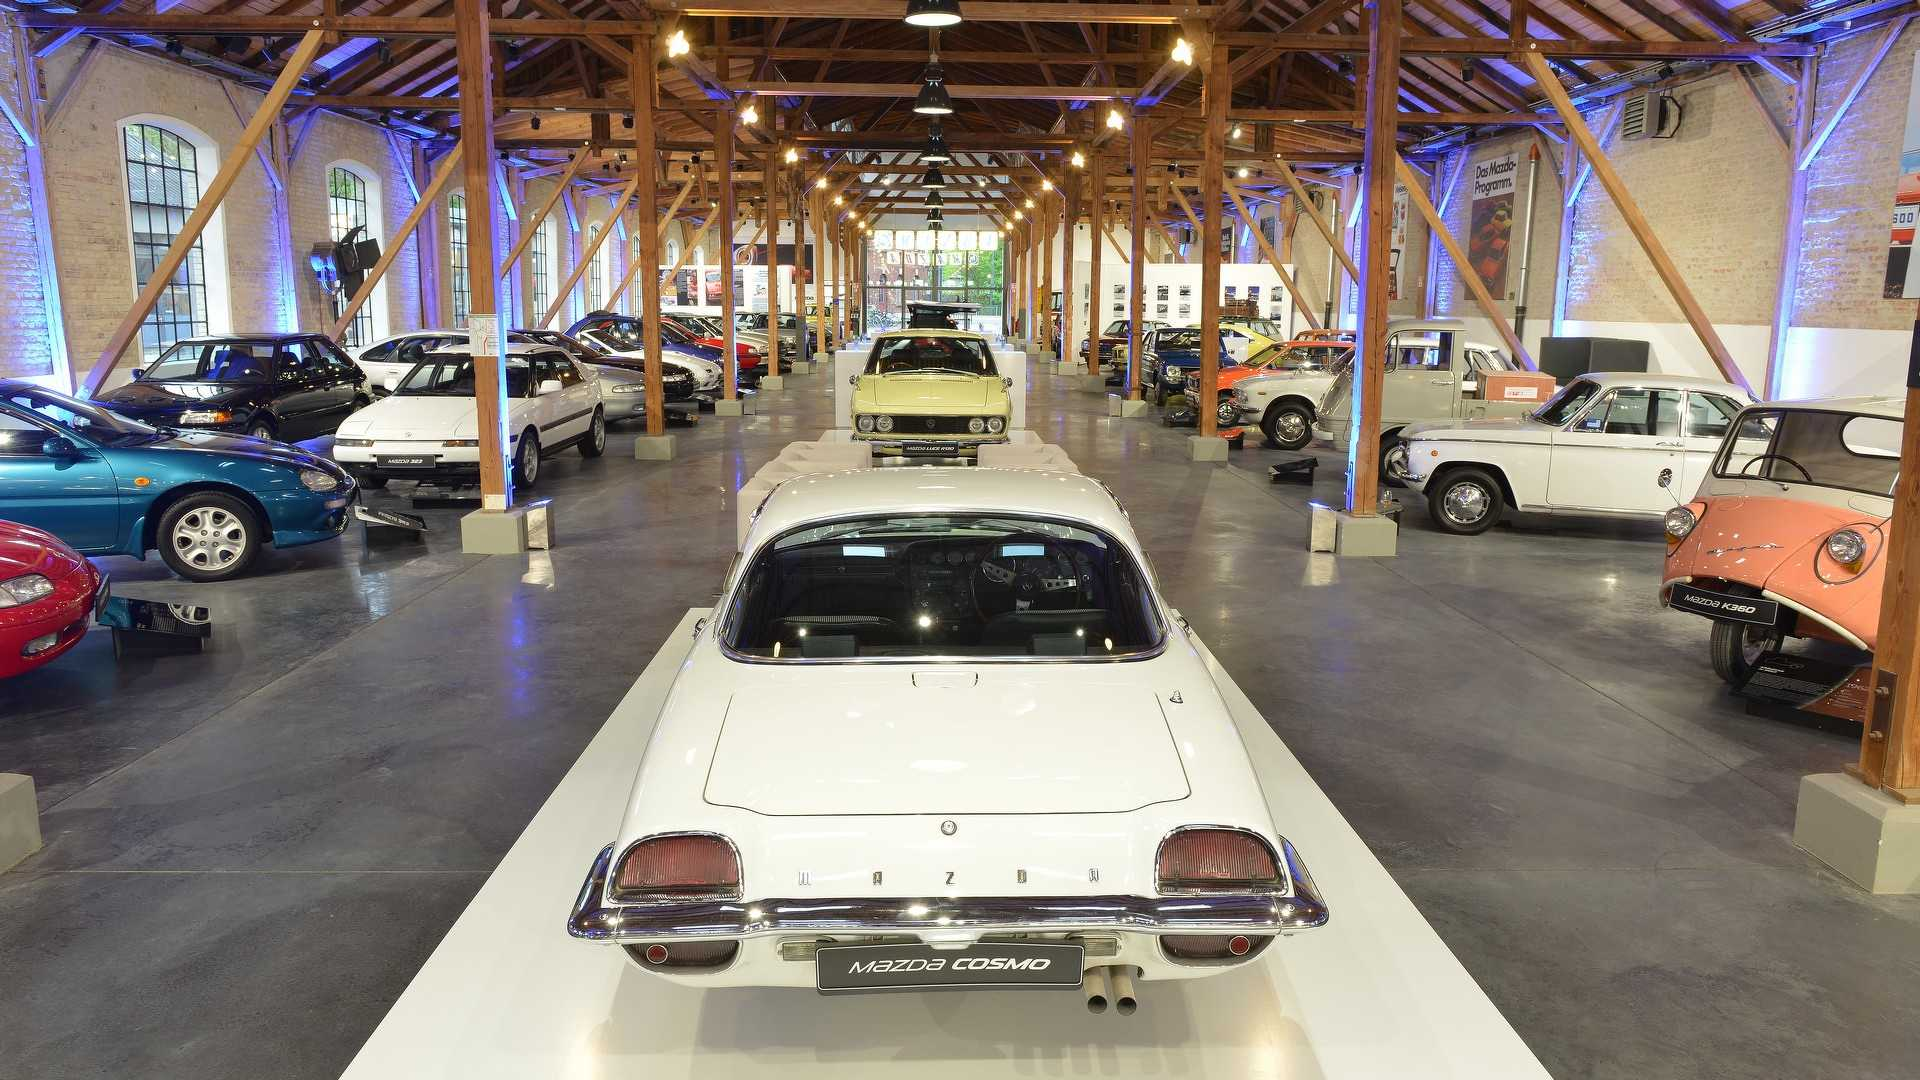 Mazda Classic Car Museum Opens In Germany First Outside